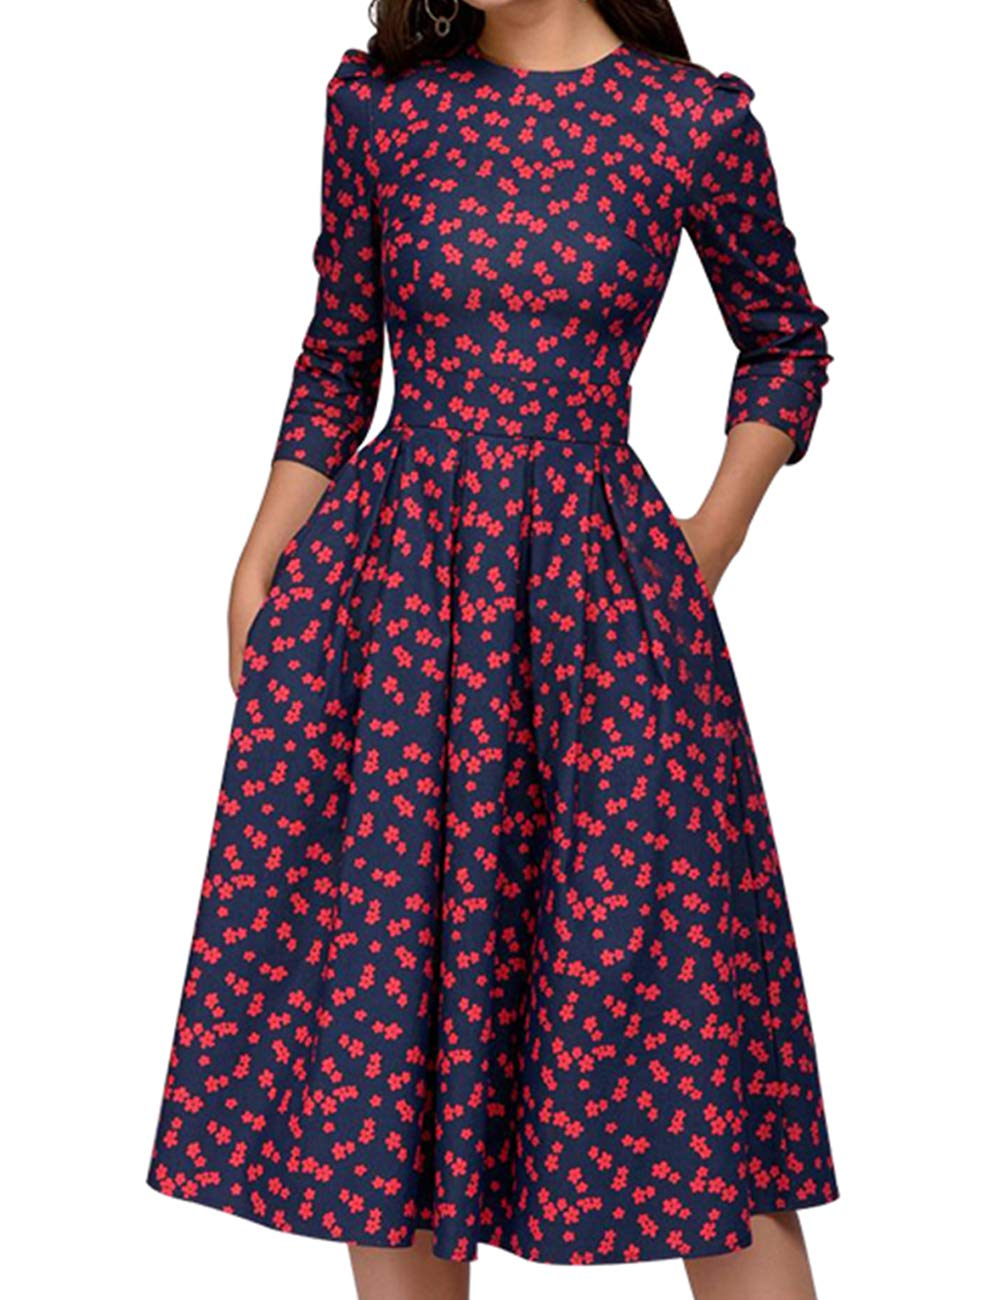 Simple Flavor Women's Floral Vintage Dress Elegant Autumn Midi Evening Dress 3/4 Sleeves (Red,L) by Simple Flavor